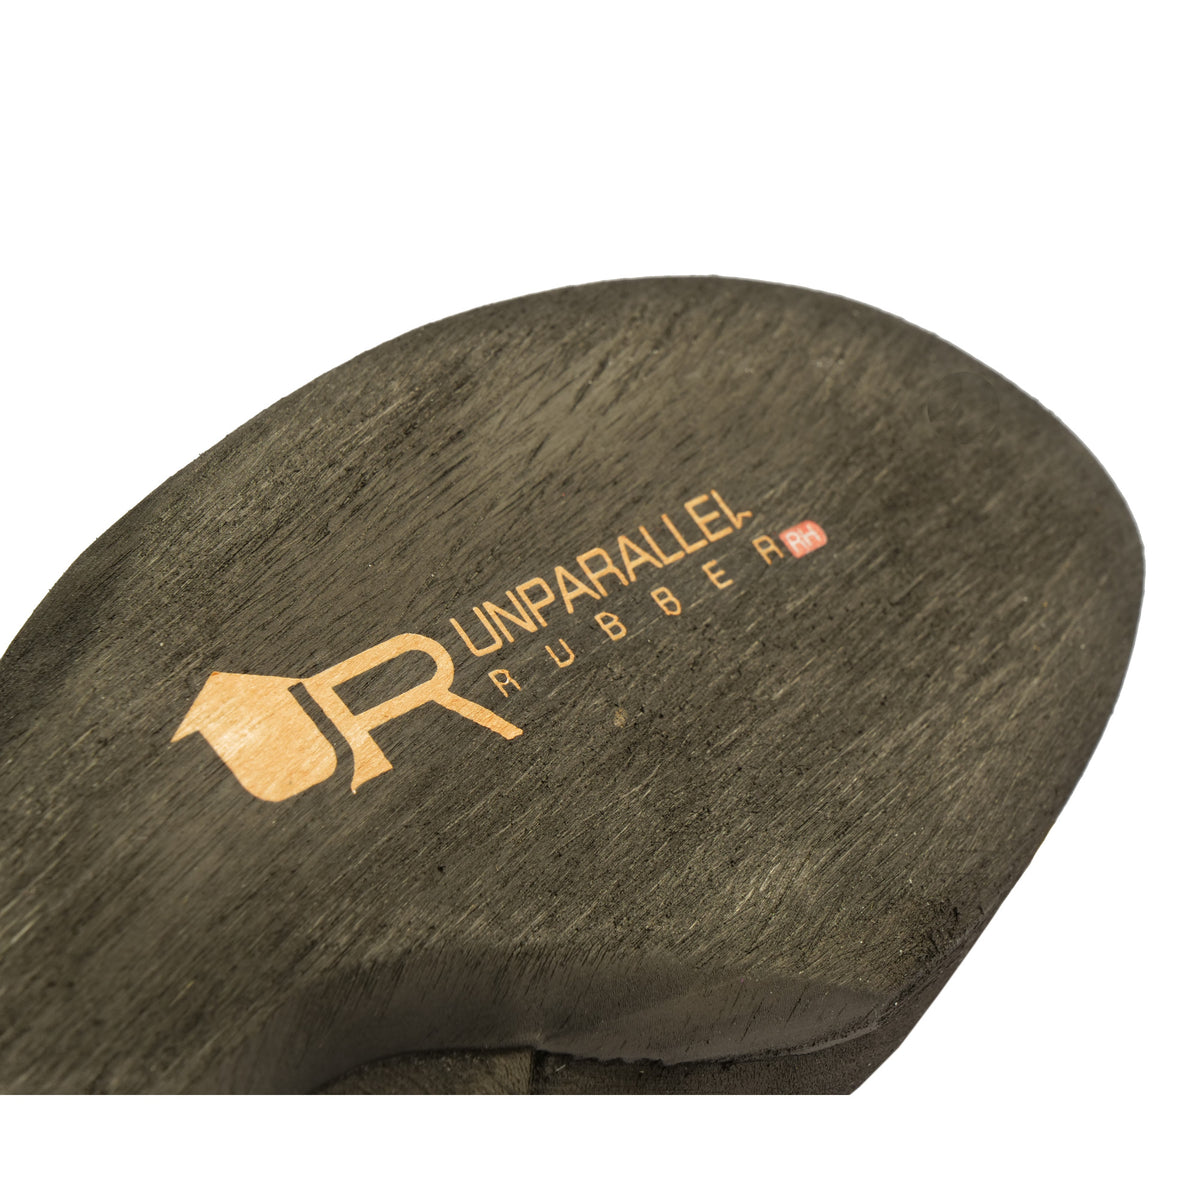 Unparallels Real hard compound sole rubber in black